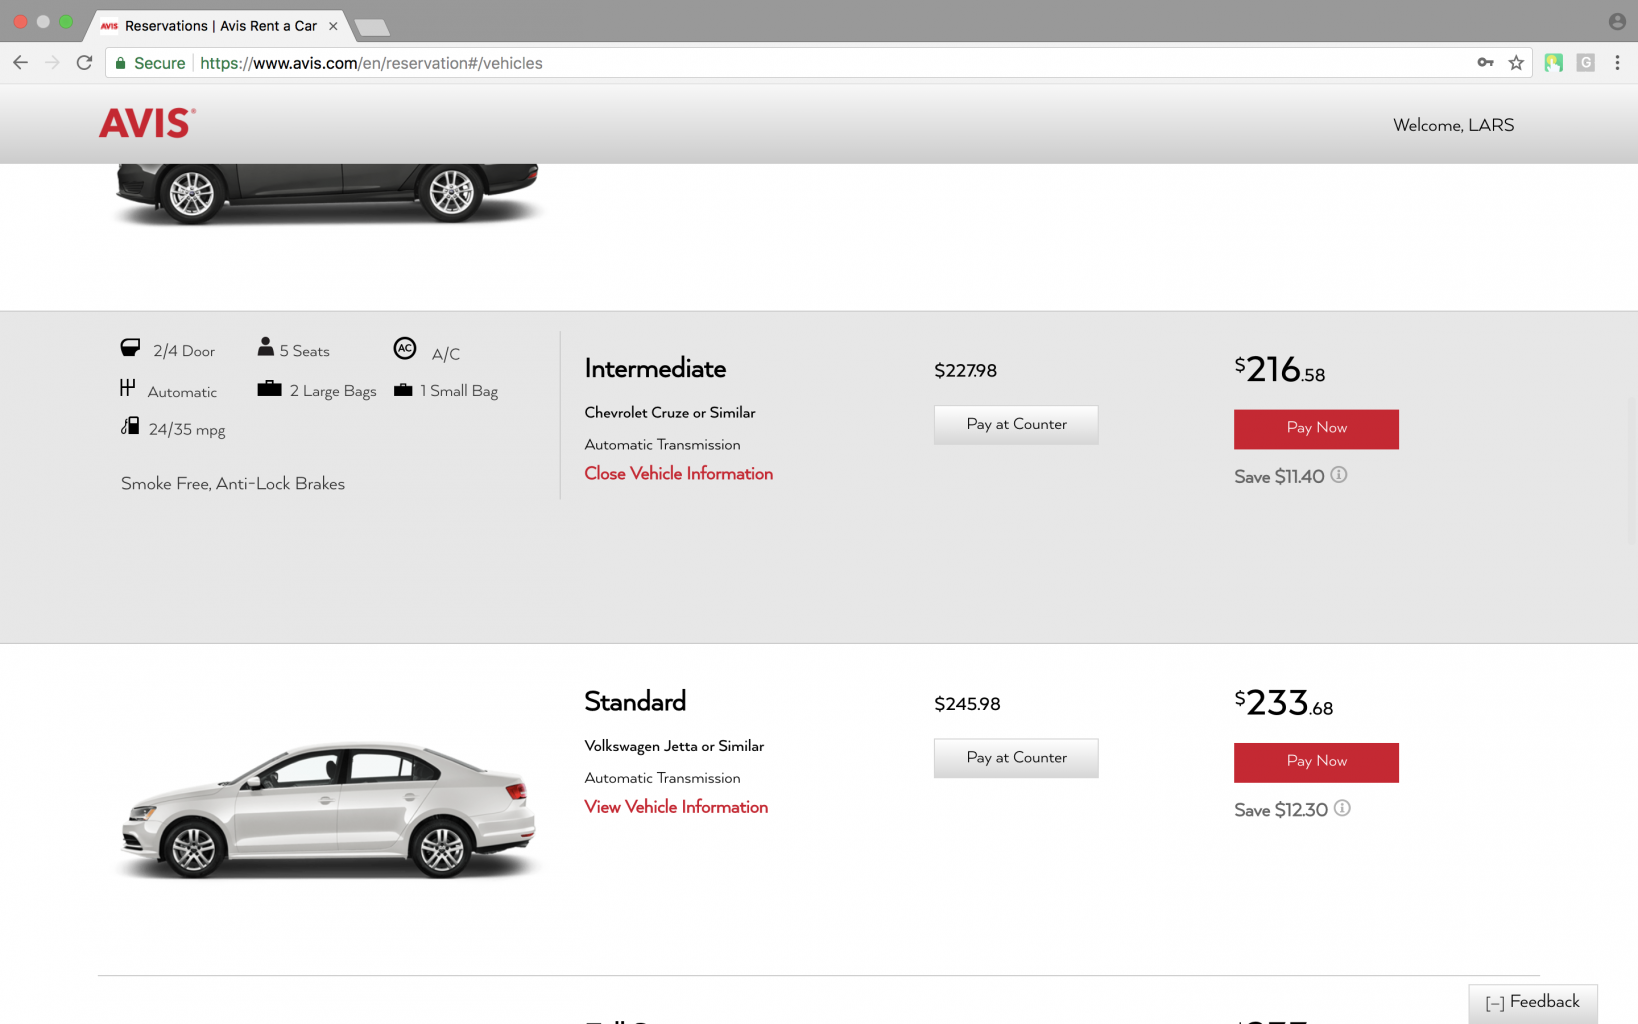 Car Rental Application Development Cost Timeline And Features